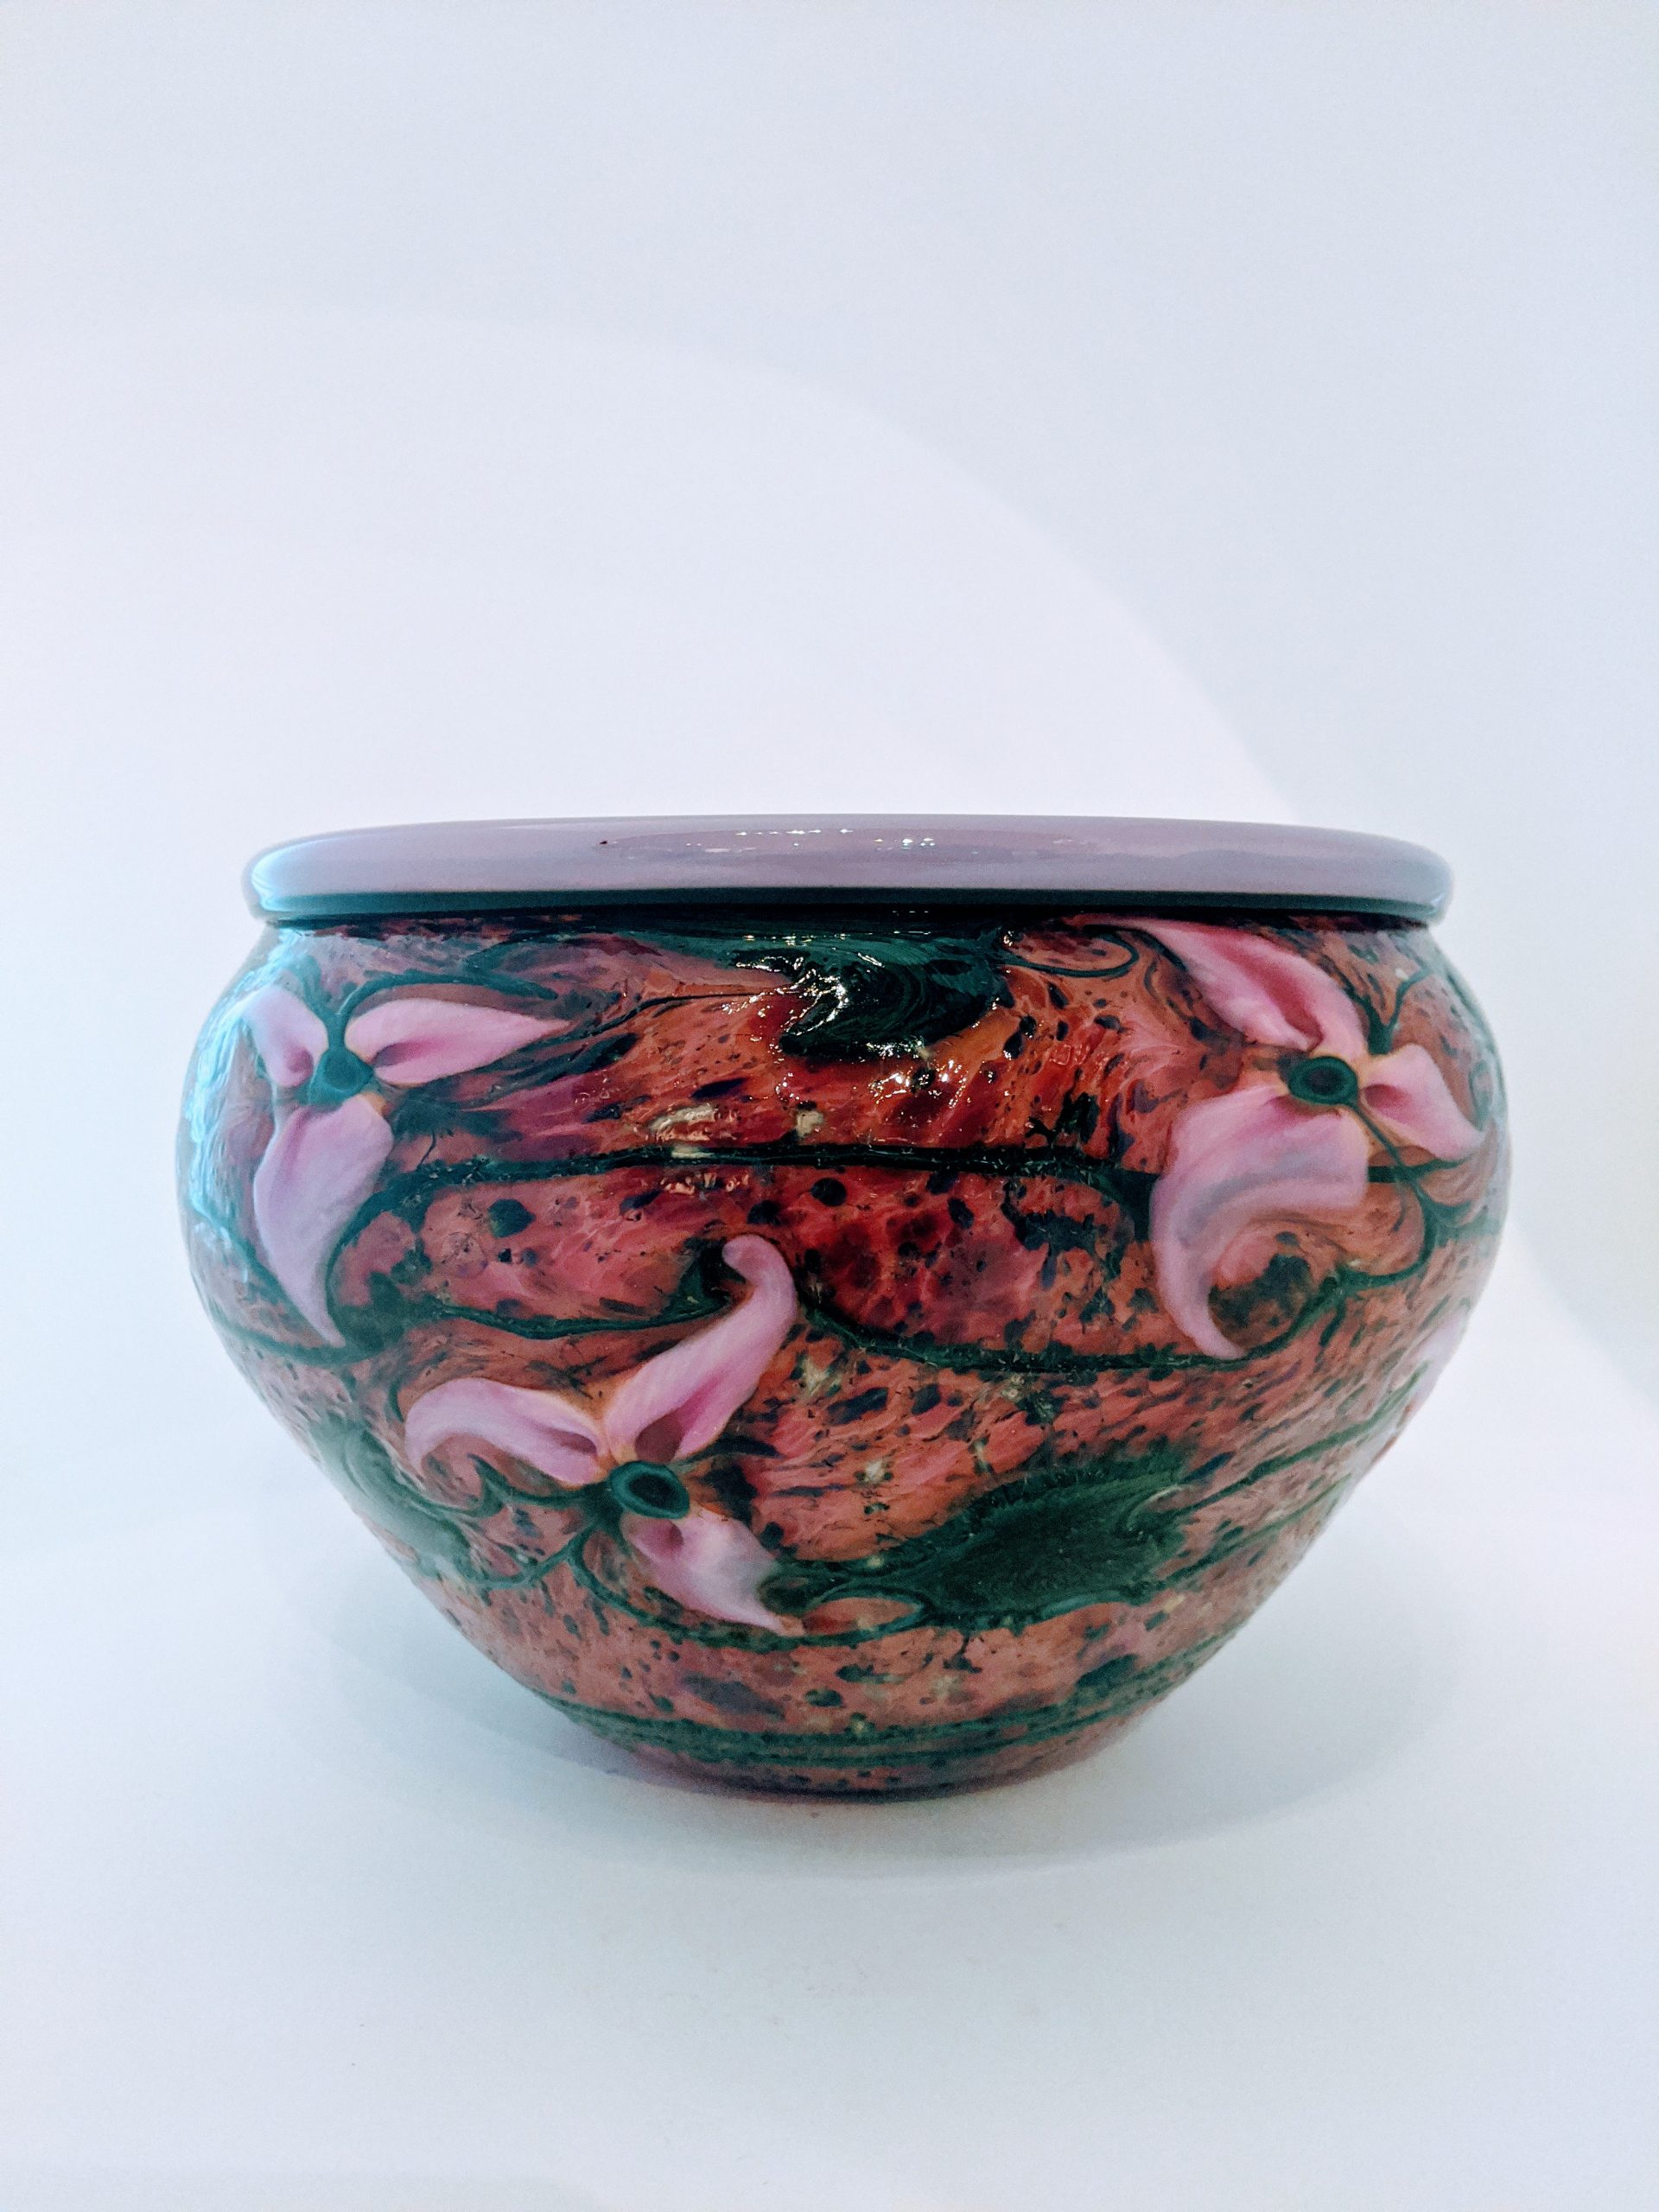 Gold Ruby Cypriot Bowl with Pink Tri-Flora and Gold Ruby Interior